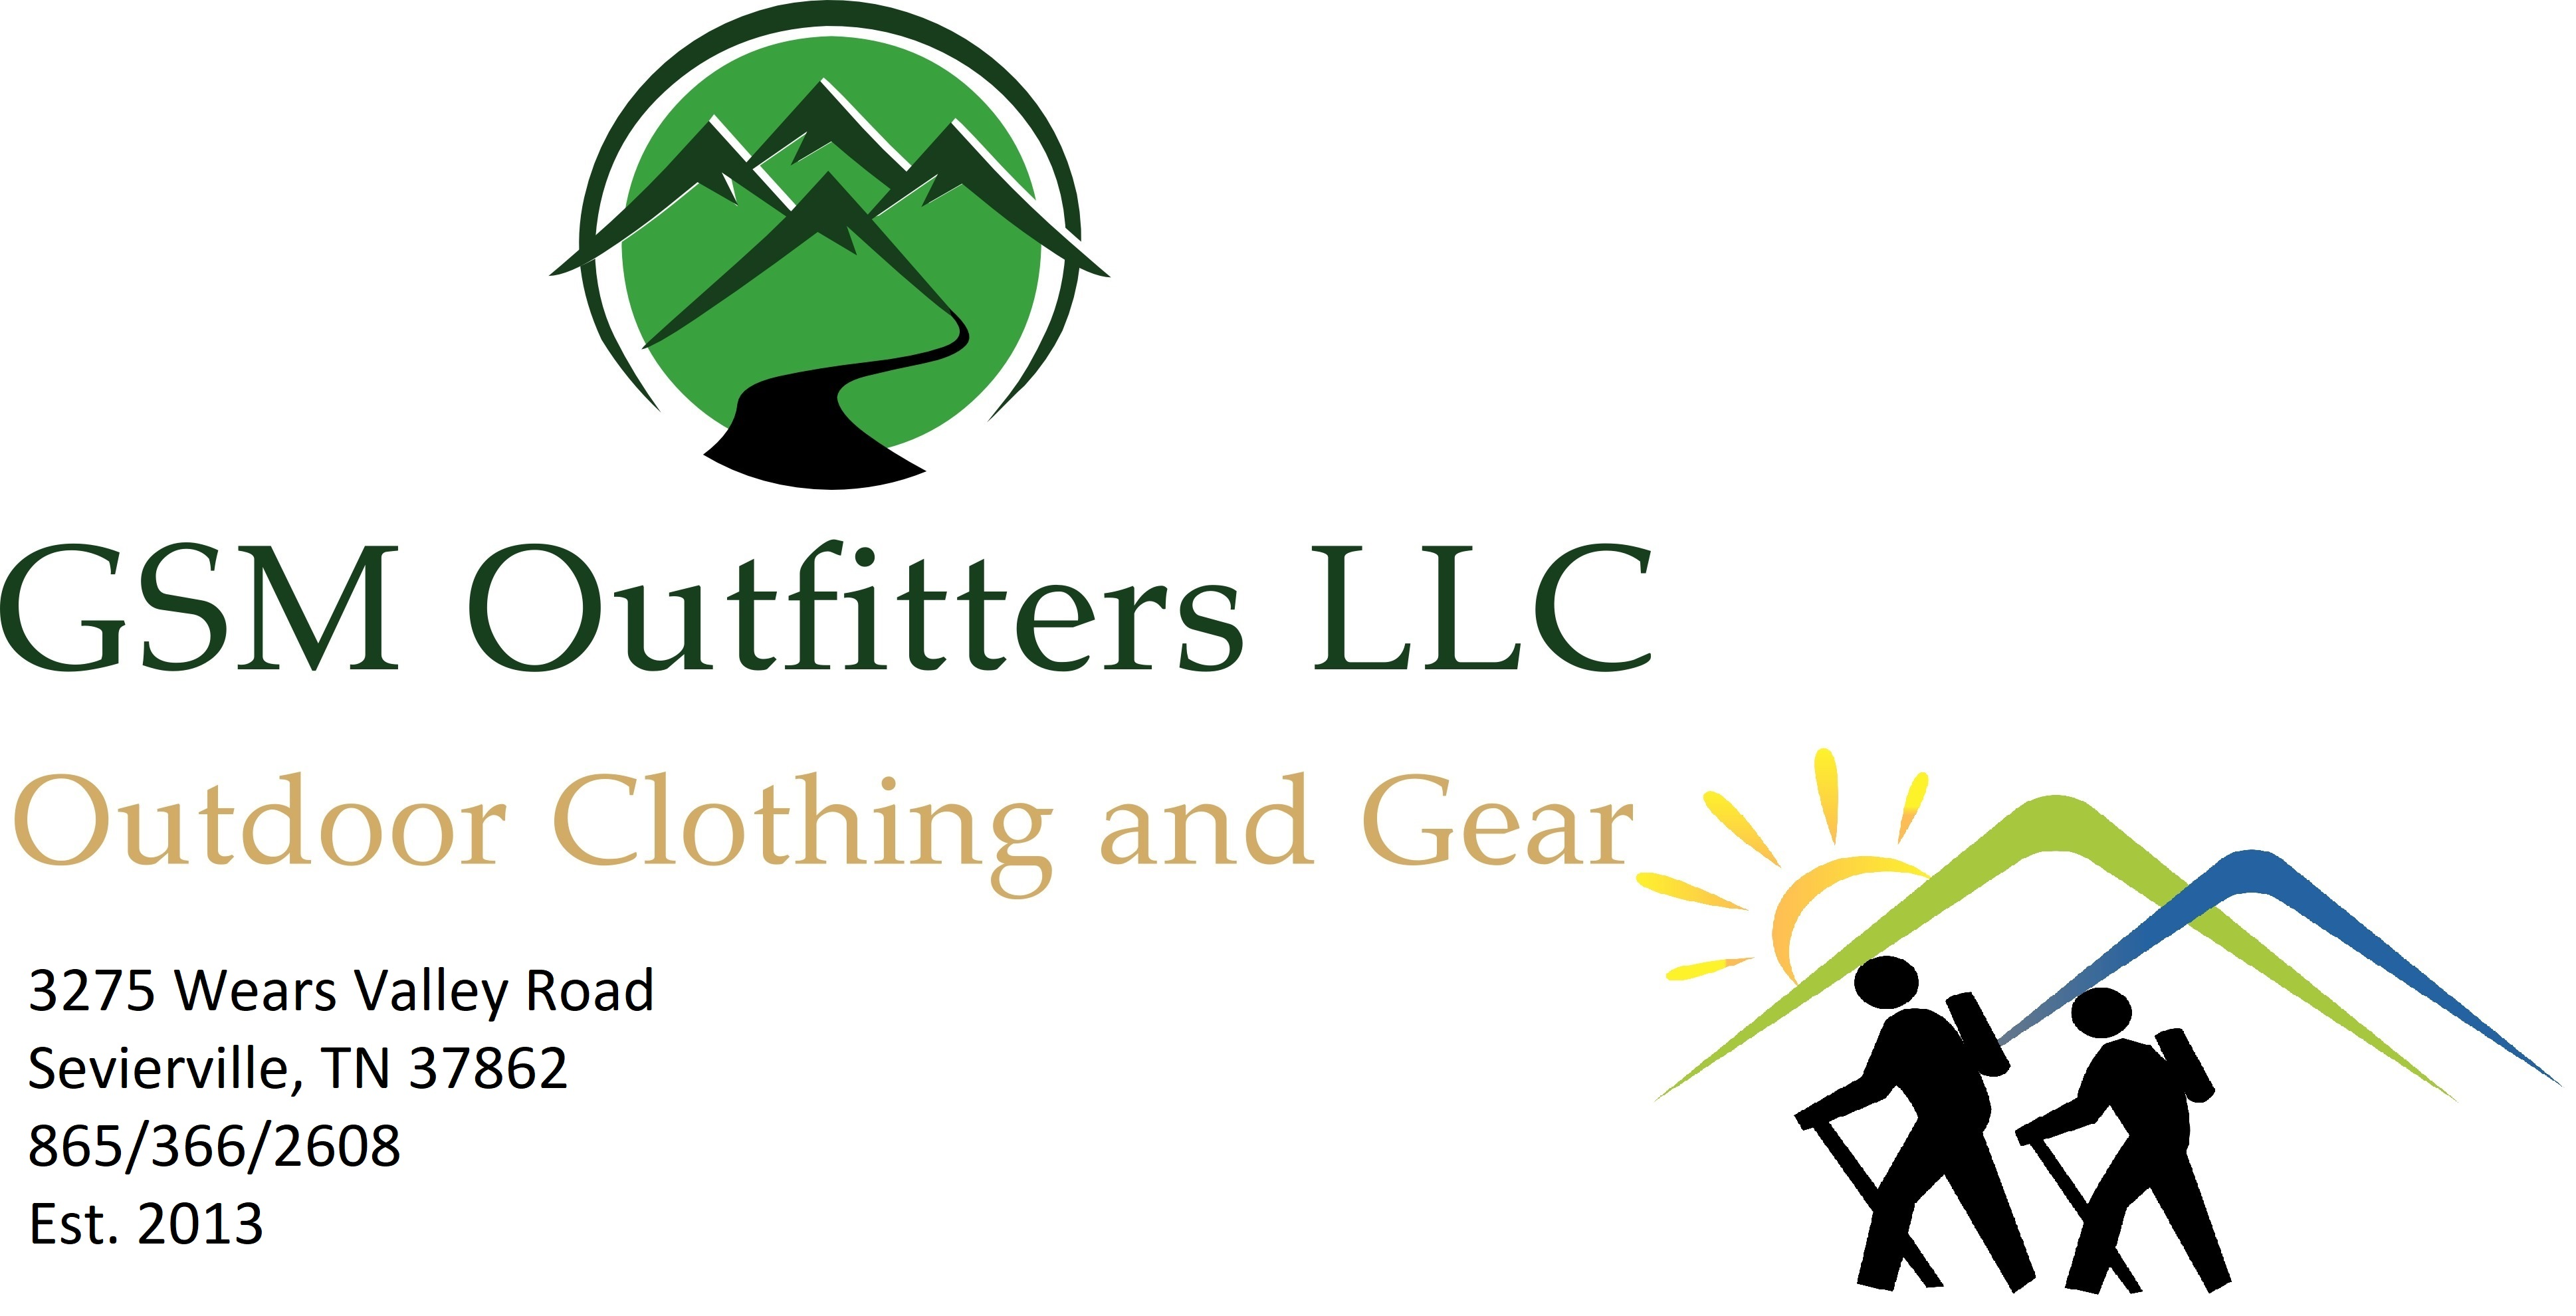 GSM Outfitters LLC